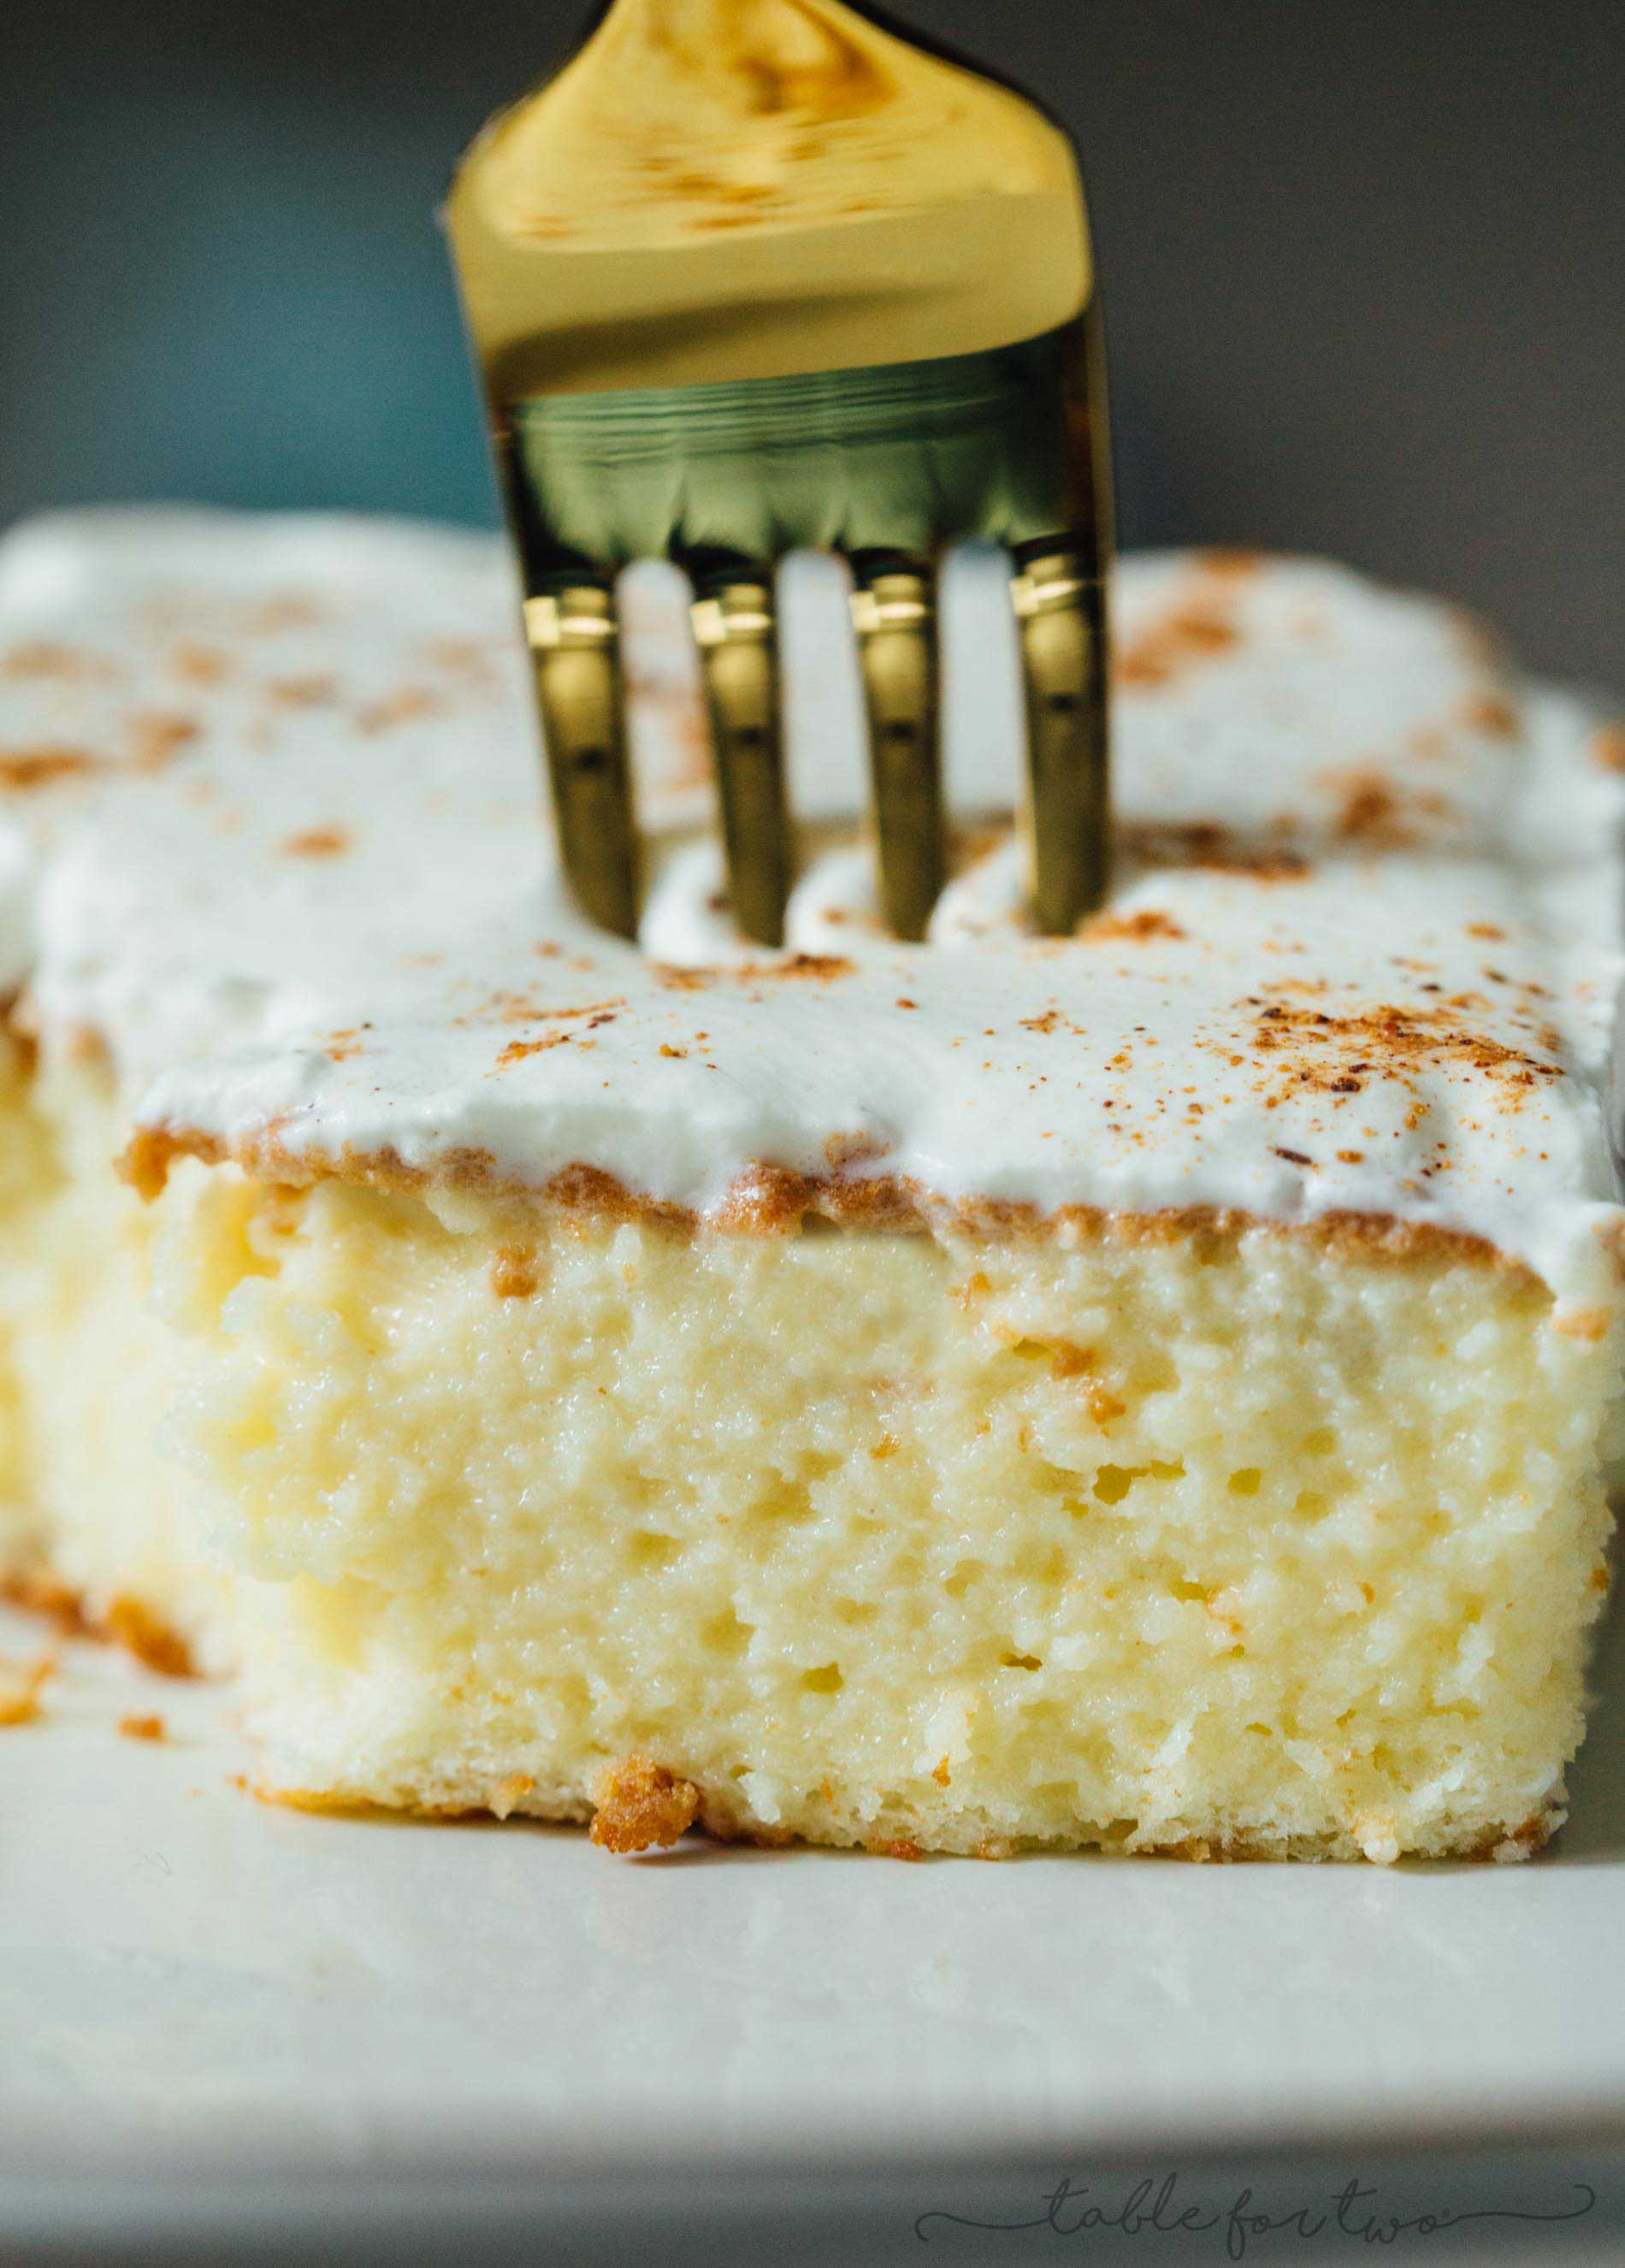 Eggnog Tres Leches Cake Tres Leches Cake made with Eggnog